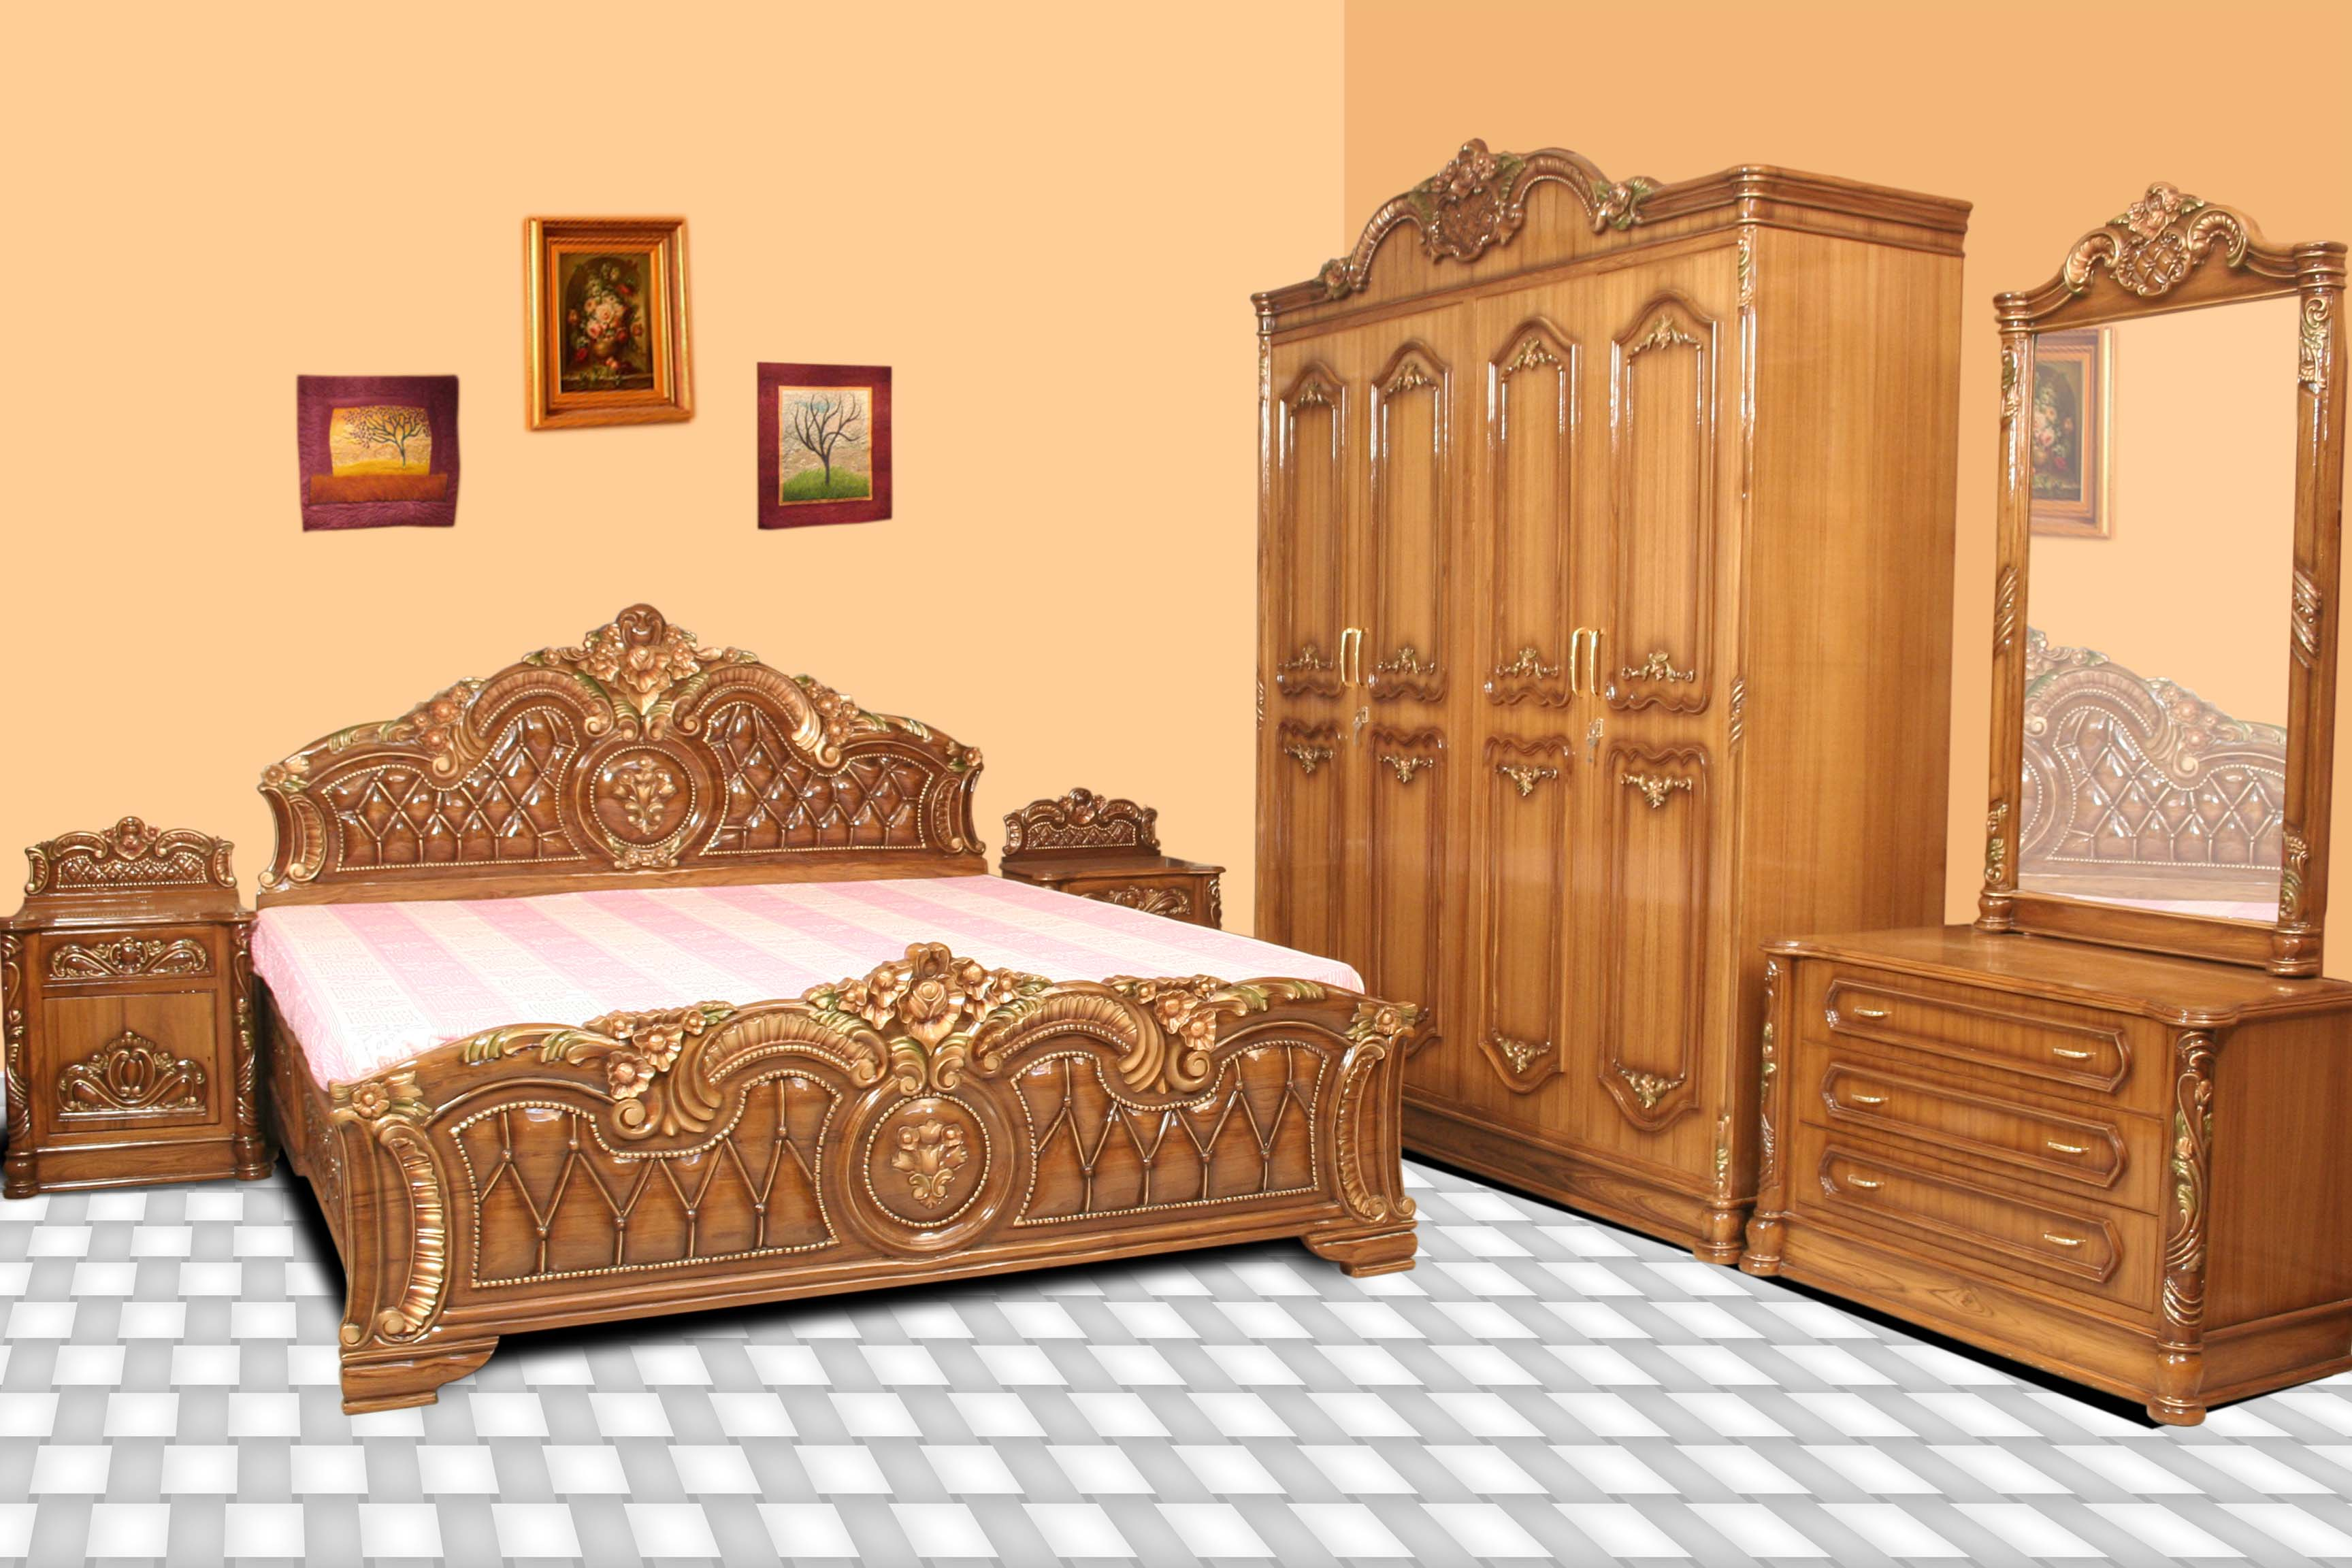 Lorded ward corinth lorded ward corinth online New home furniture bekasi